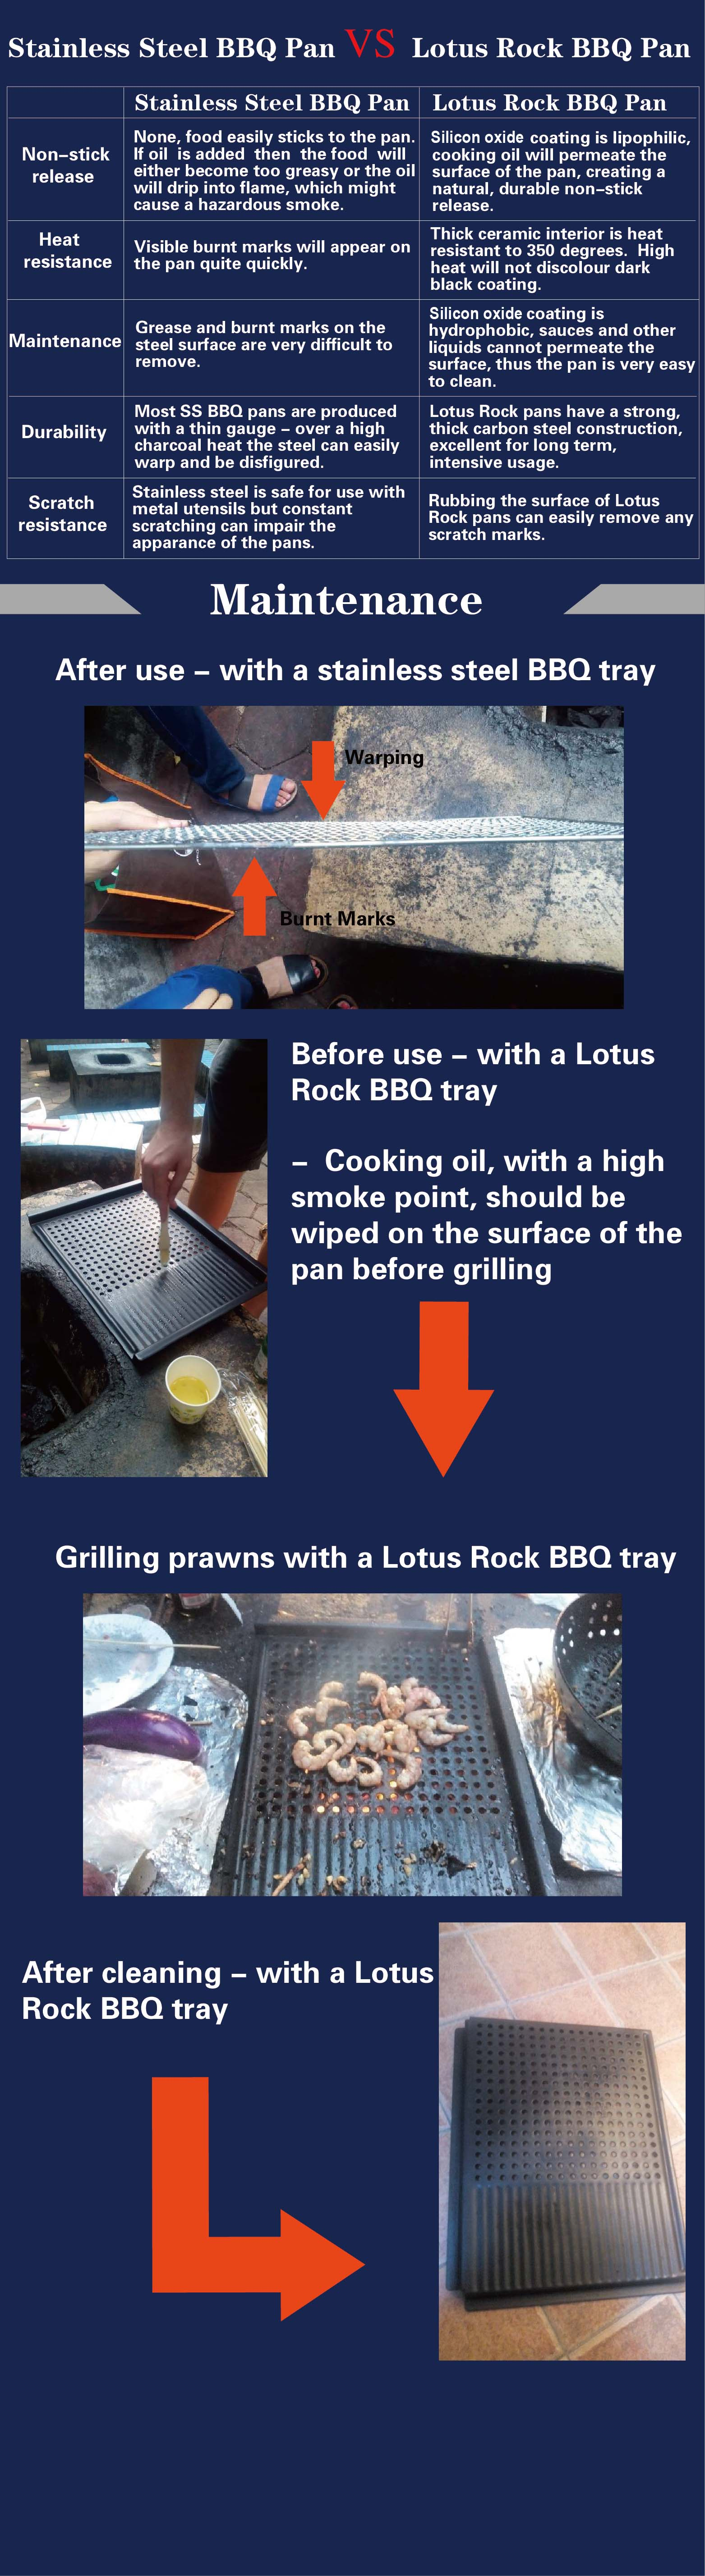 Lotus Rock BBQ Pan Vs Stainless Steel BBQ Pan